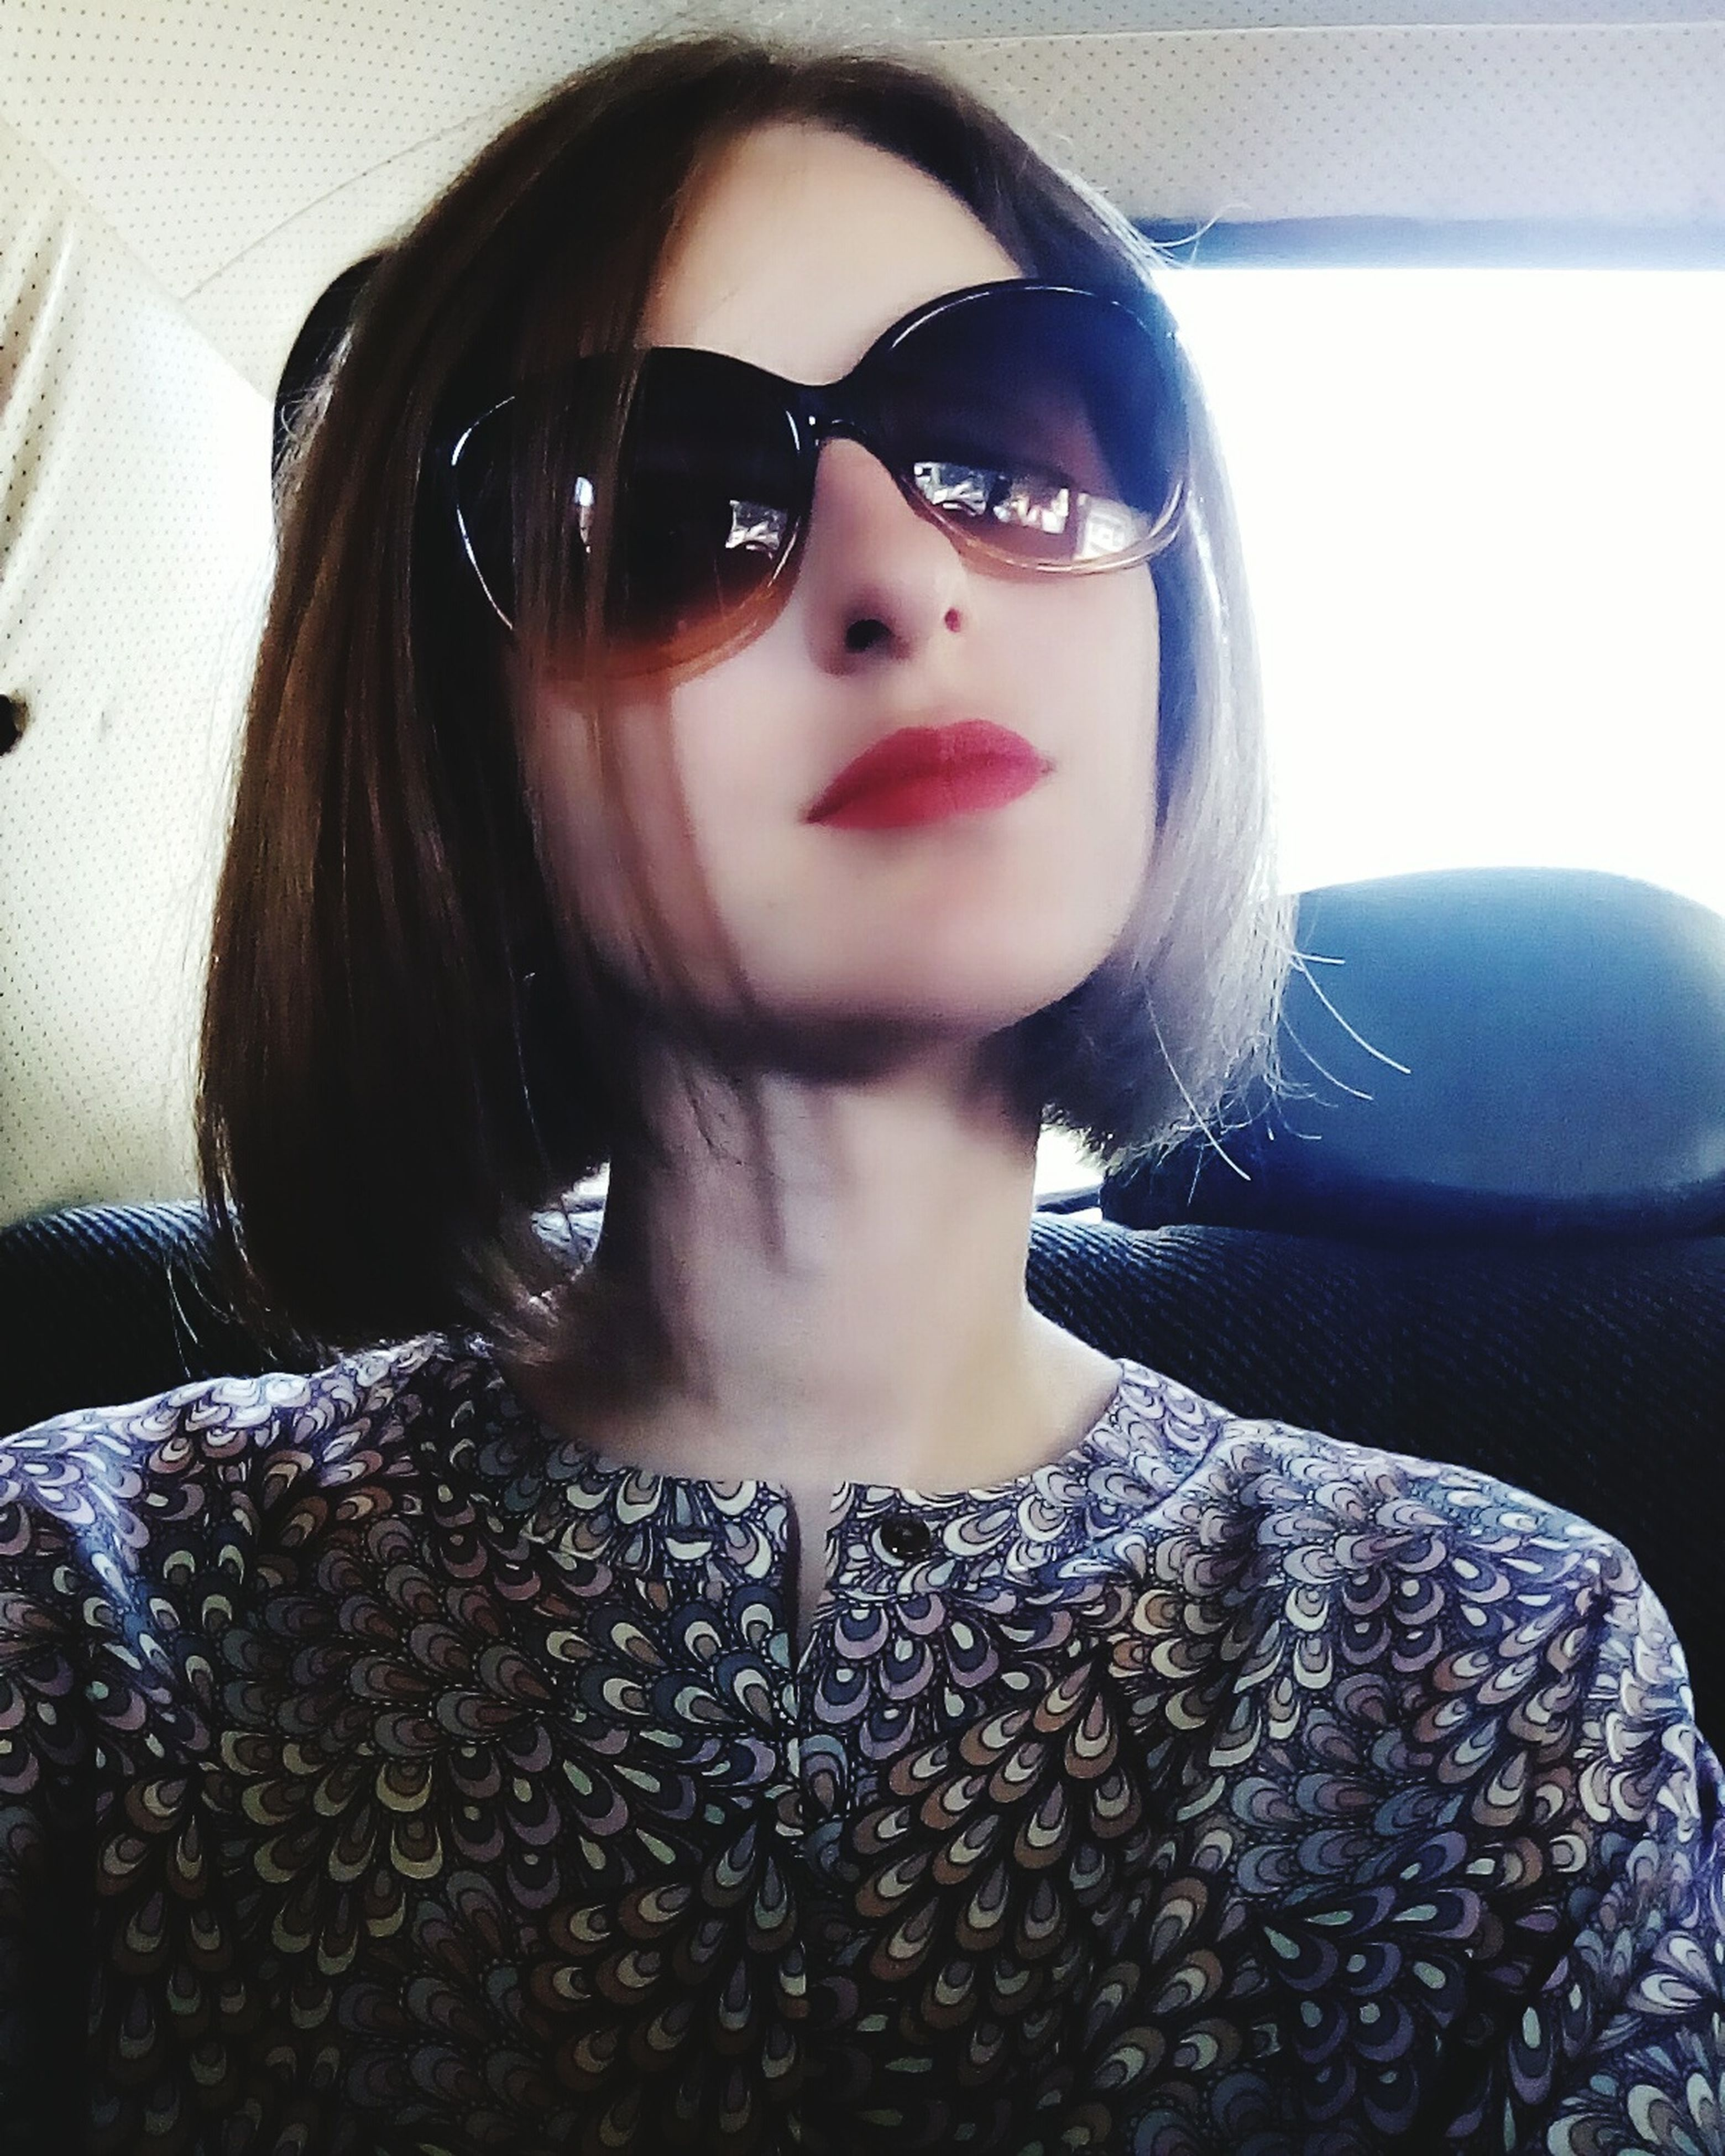 sunglasses, looking at camera, front view, real people, portrait, young women, young adult, one person, beautiful woman, fashion, lifestyles, leisure activity, day, attitude, red lipstick, indoors, warm clothing, close-up